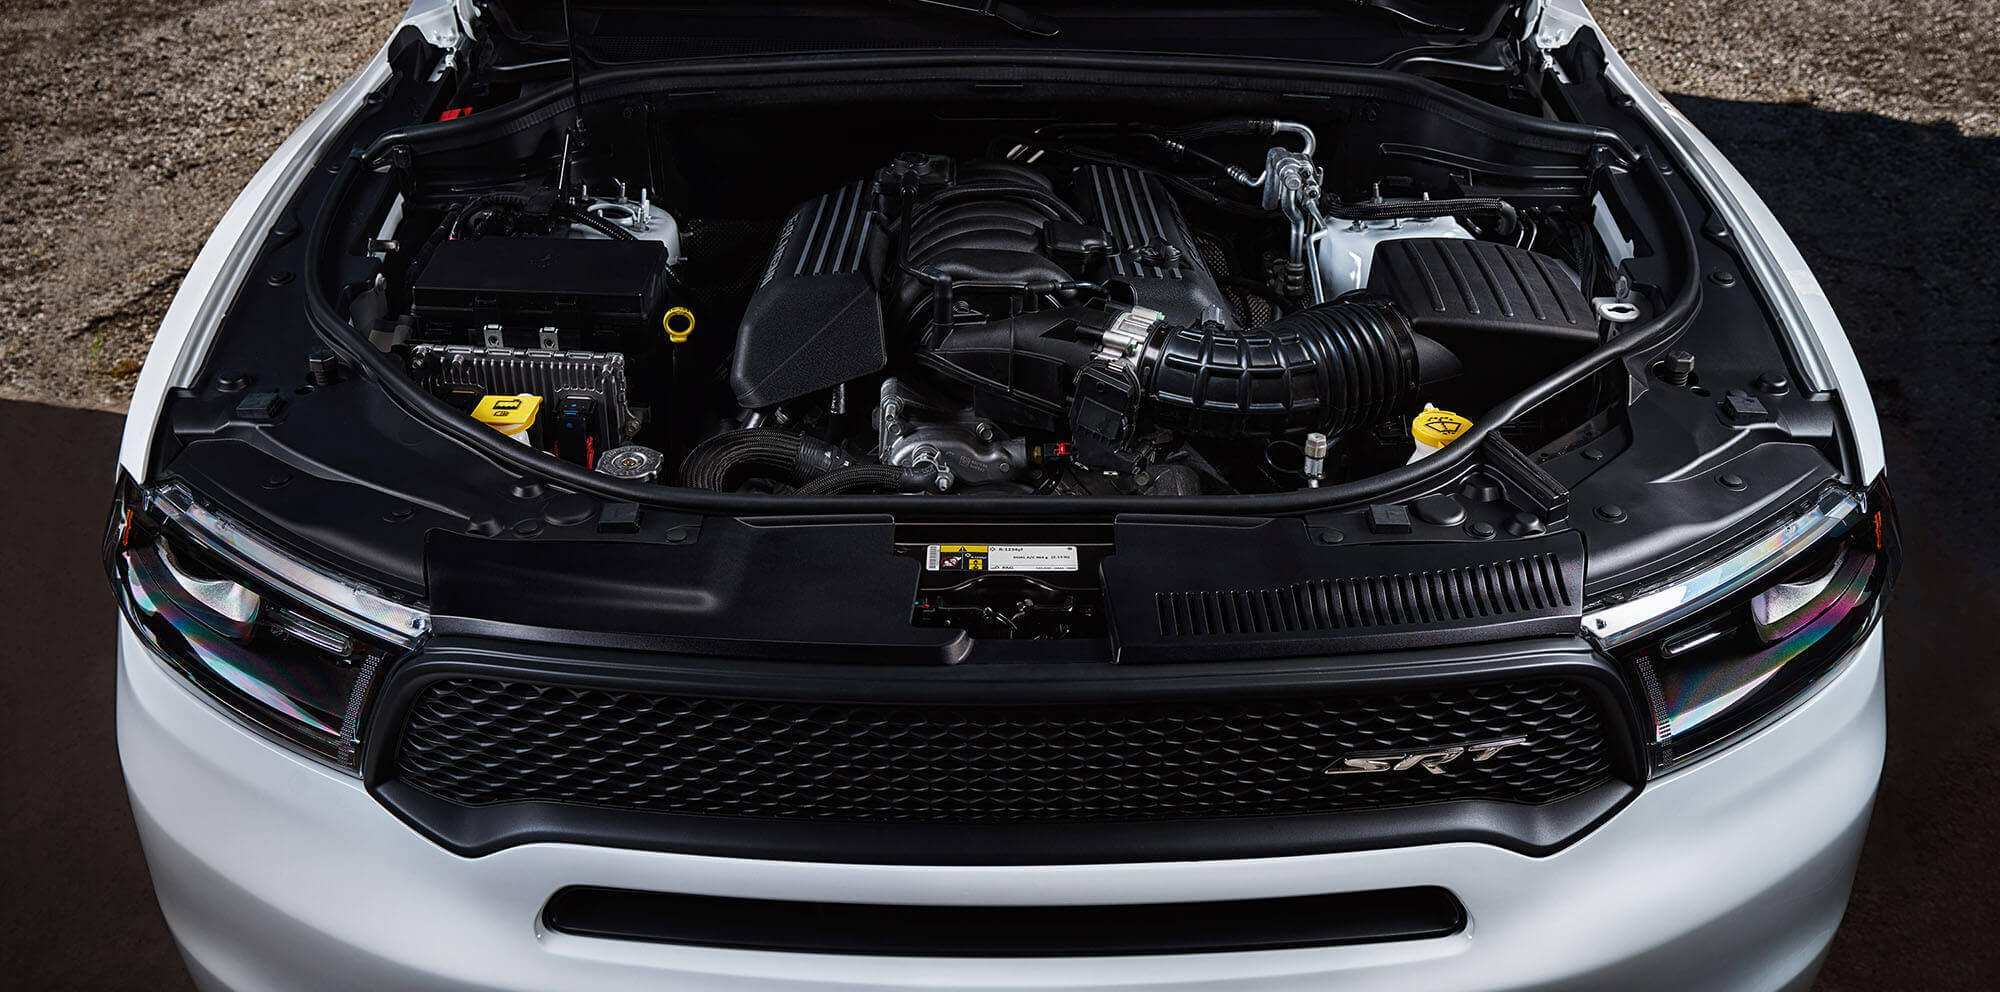 56 Best 2020 Dodge Charger Engine Review